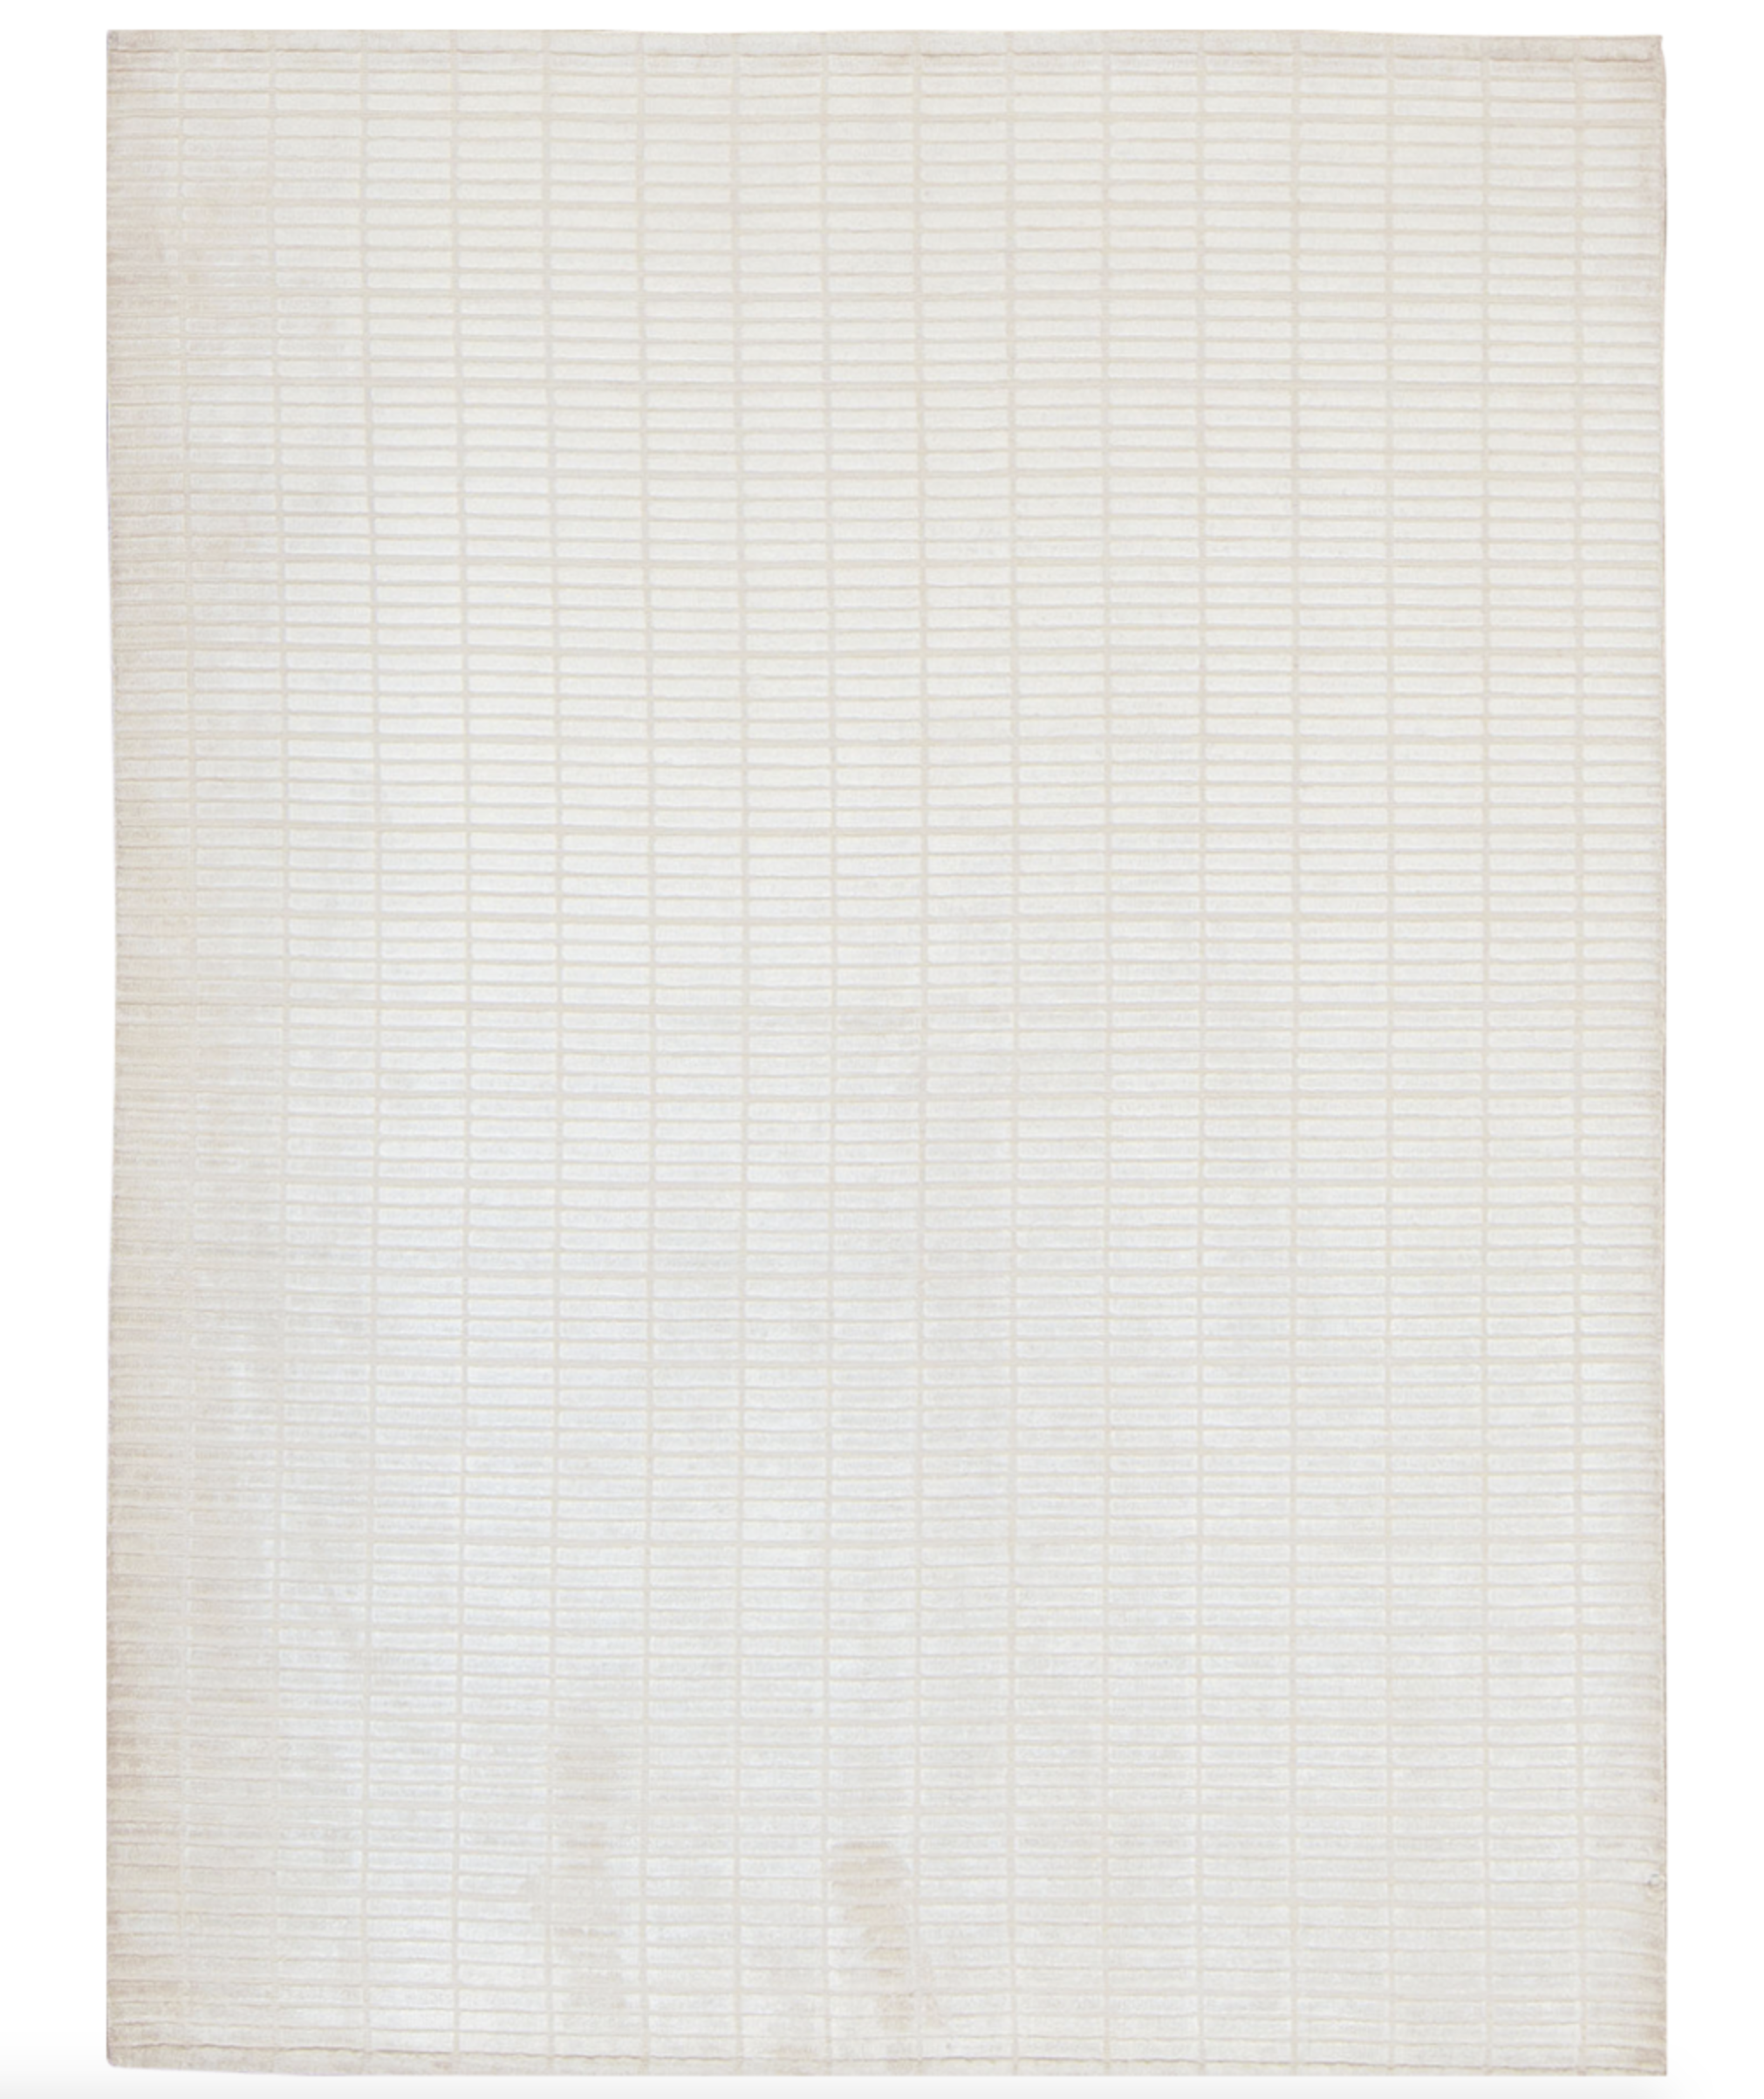 Urban Outfitters Berber Rug: HUNTING FOR THE PERFECT CREAM RUG